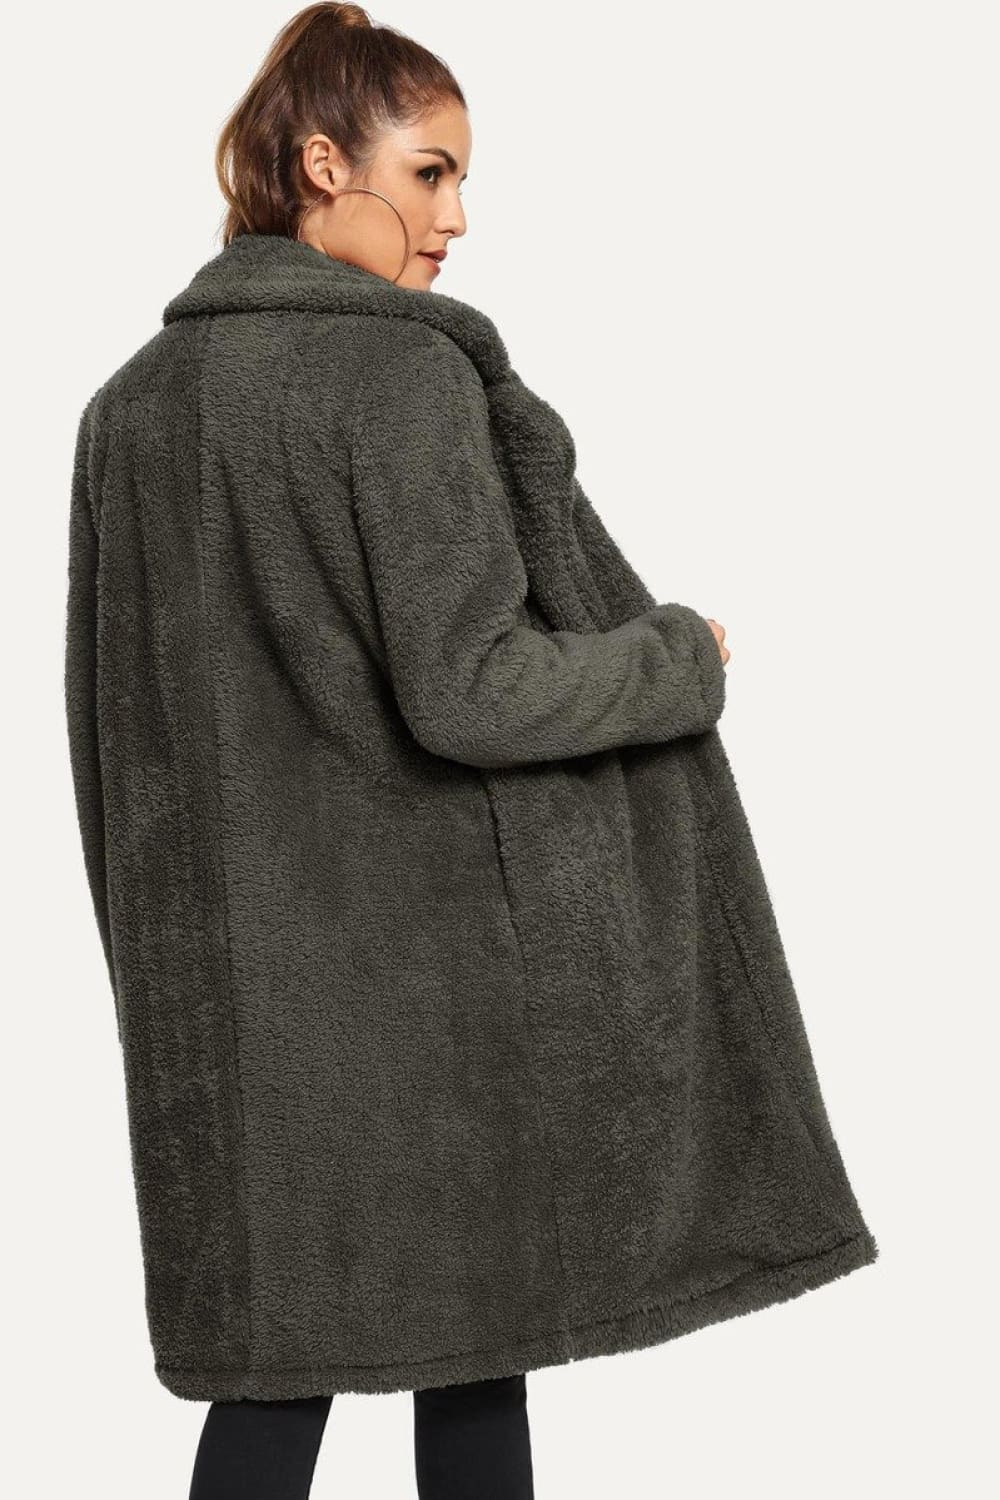 Johanna Long Teddy Coat in Grey - Outerwear - Evan & Jane